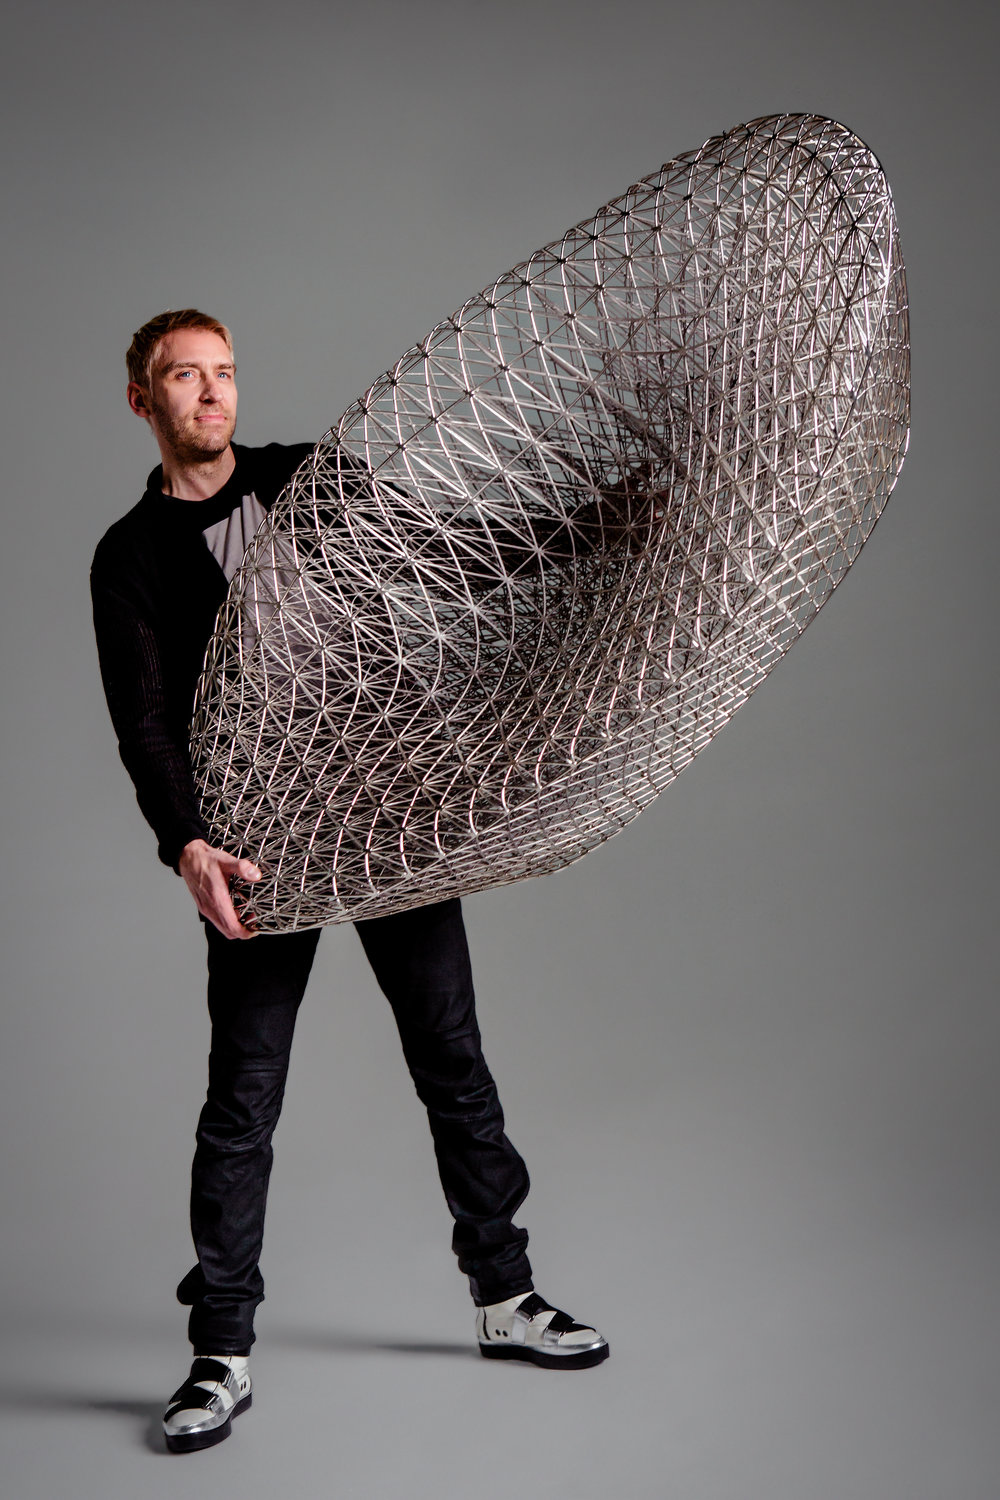 Pioneering designs that push the limits of new 3D printing technologies. -